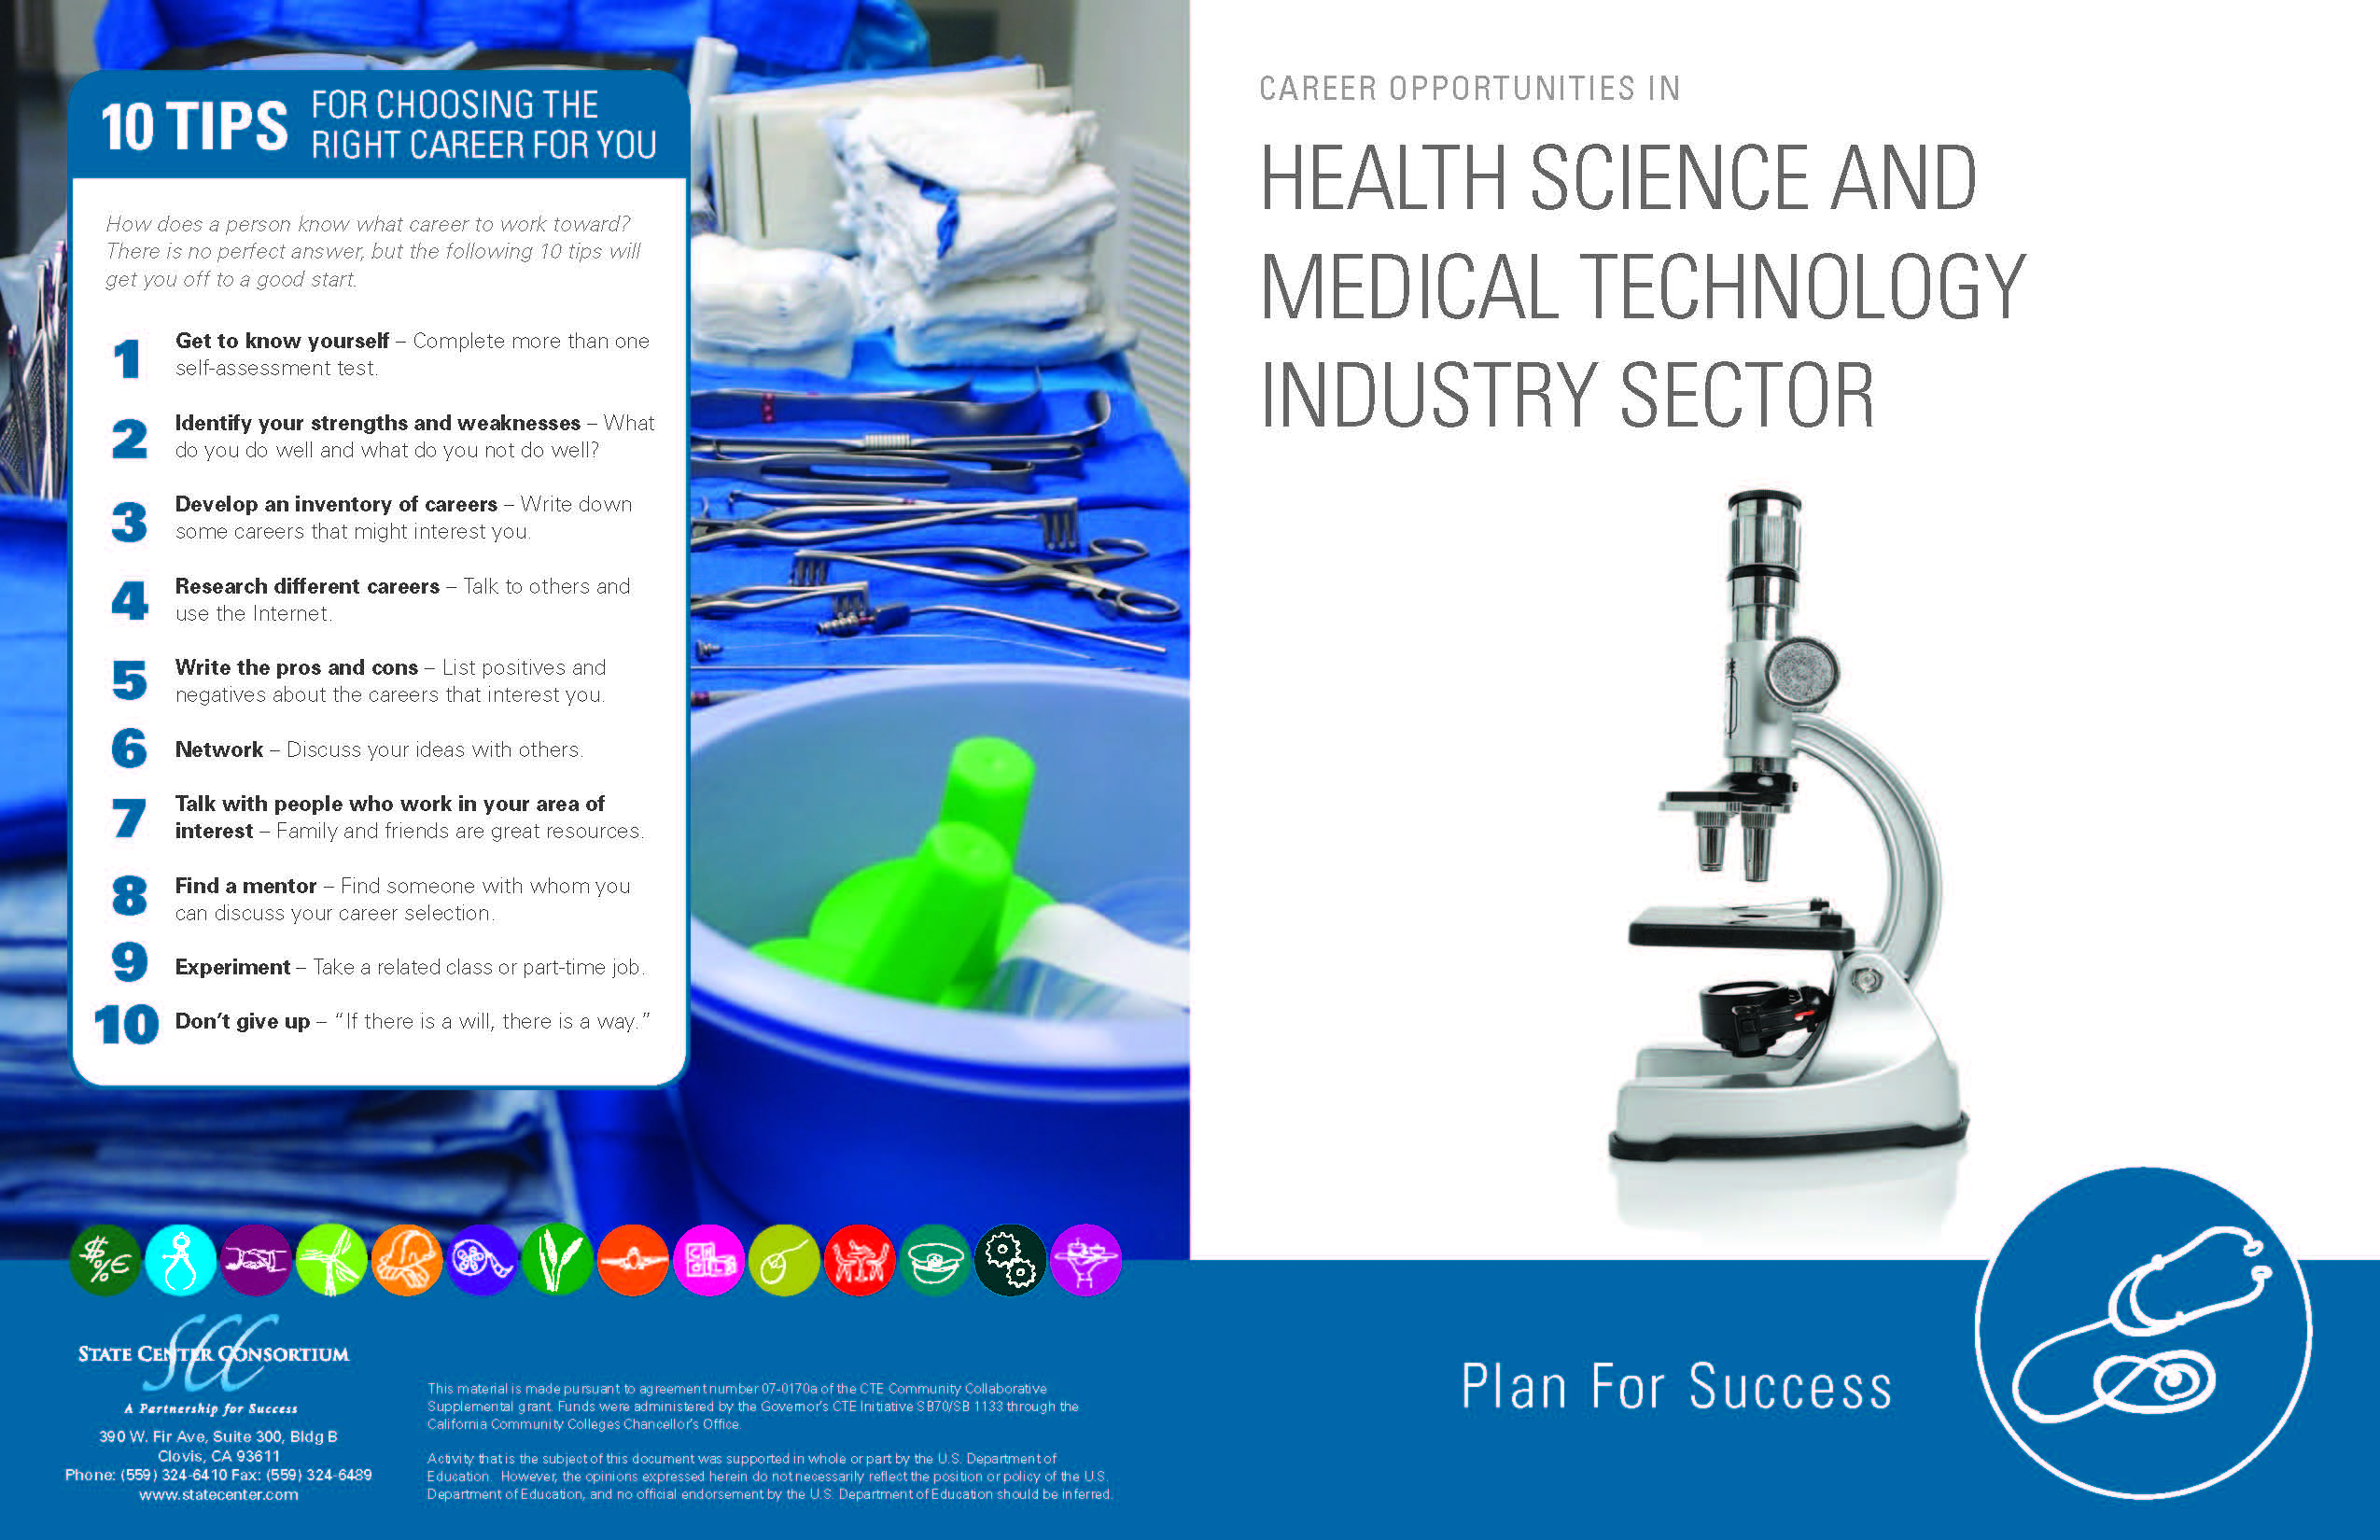 Download brochure: Health Science and Medical Technology